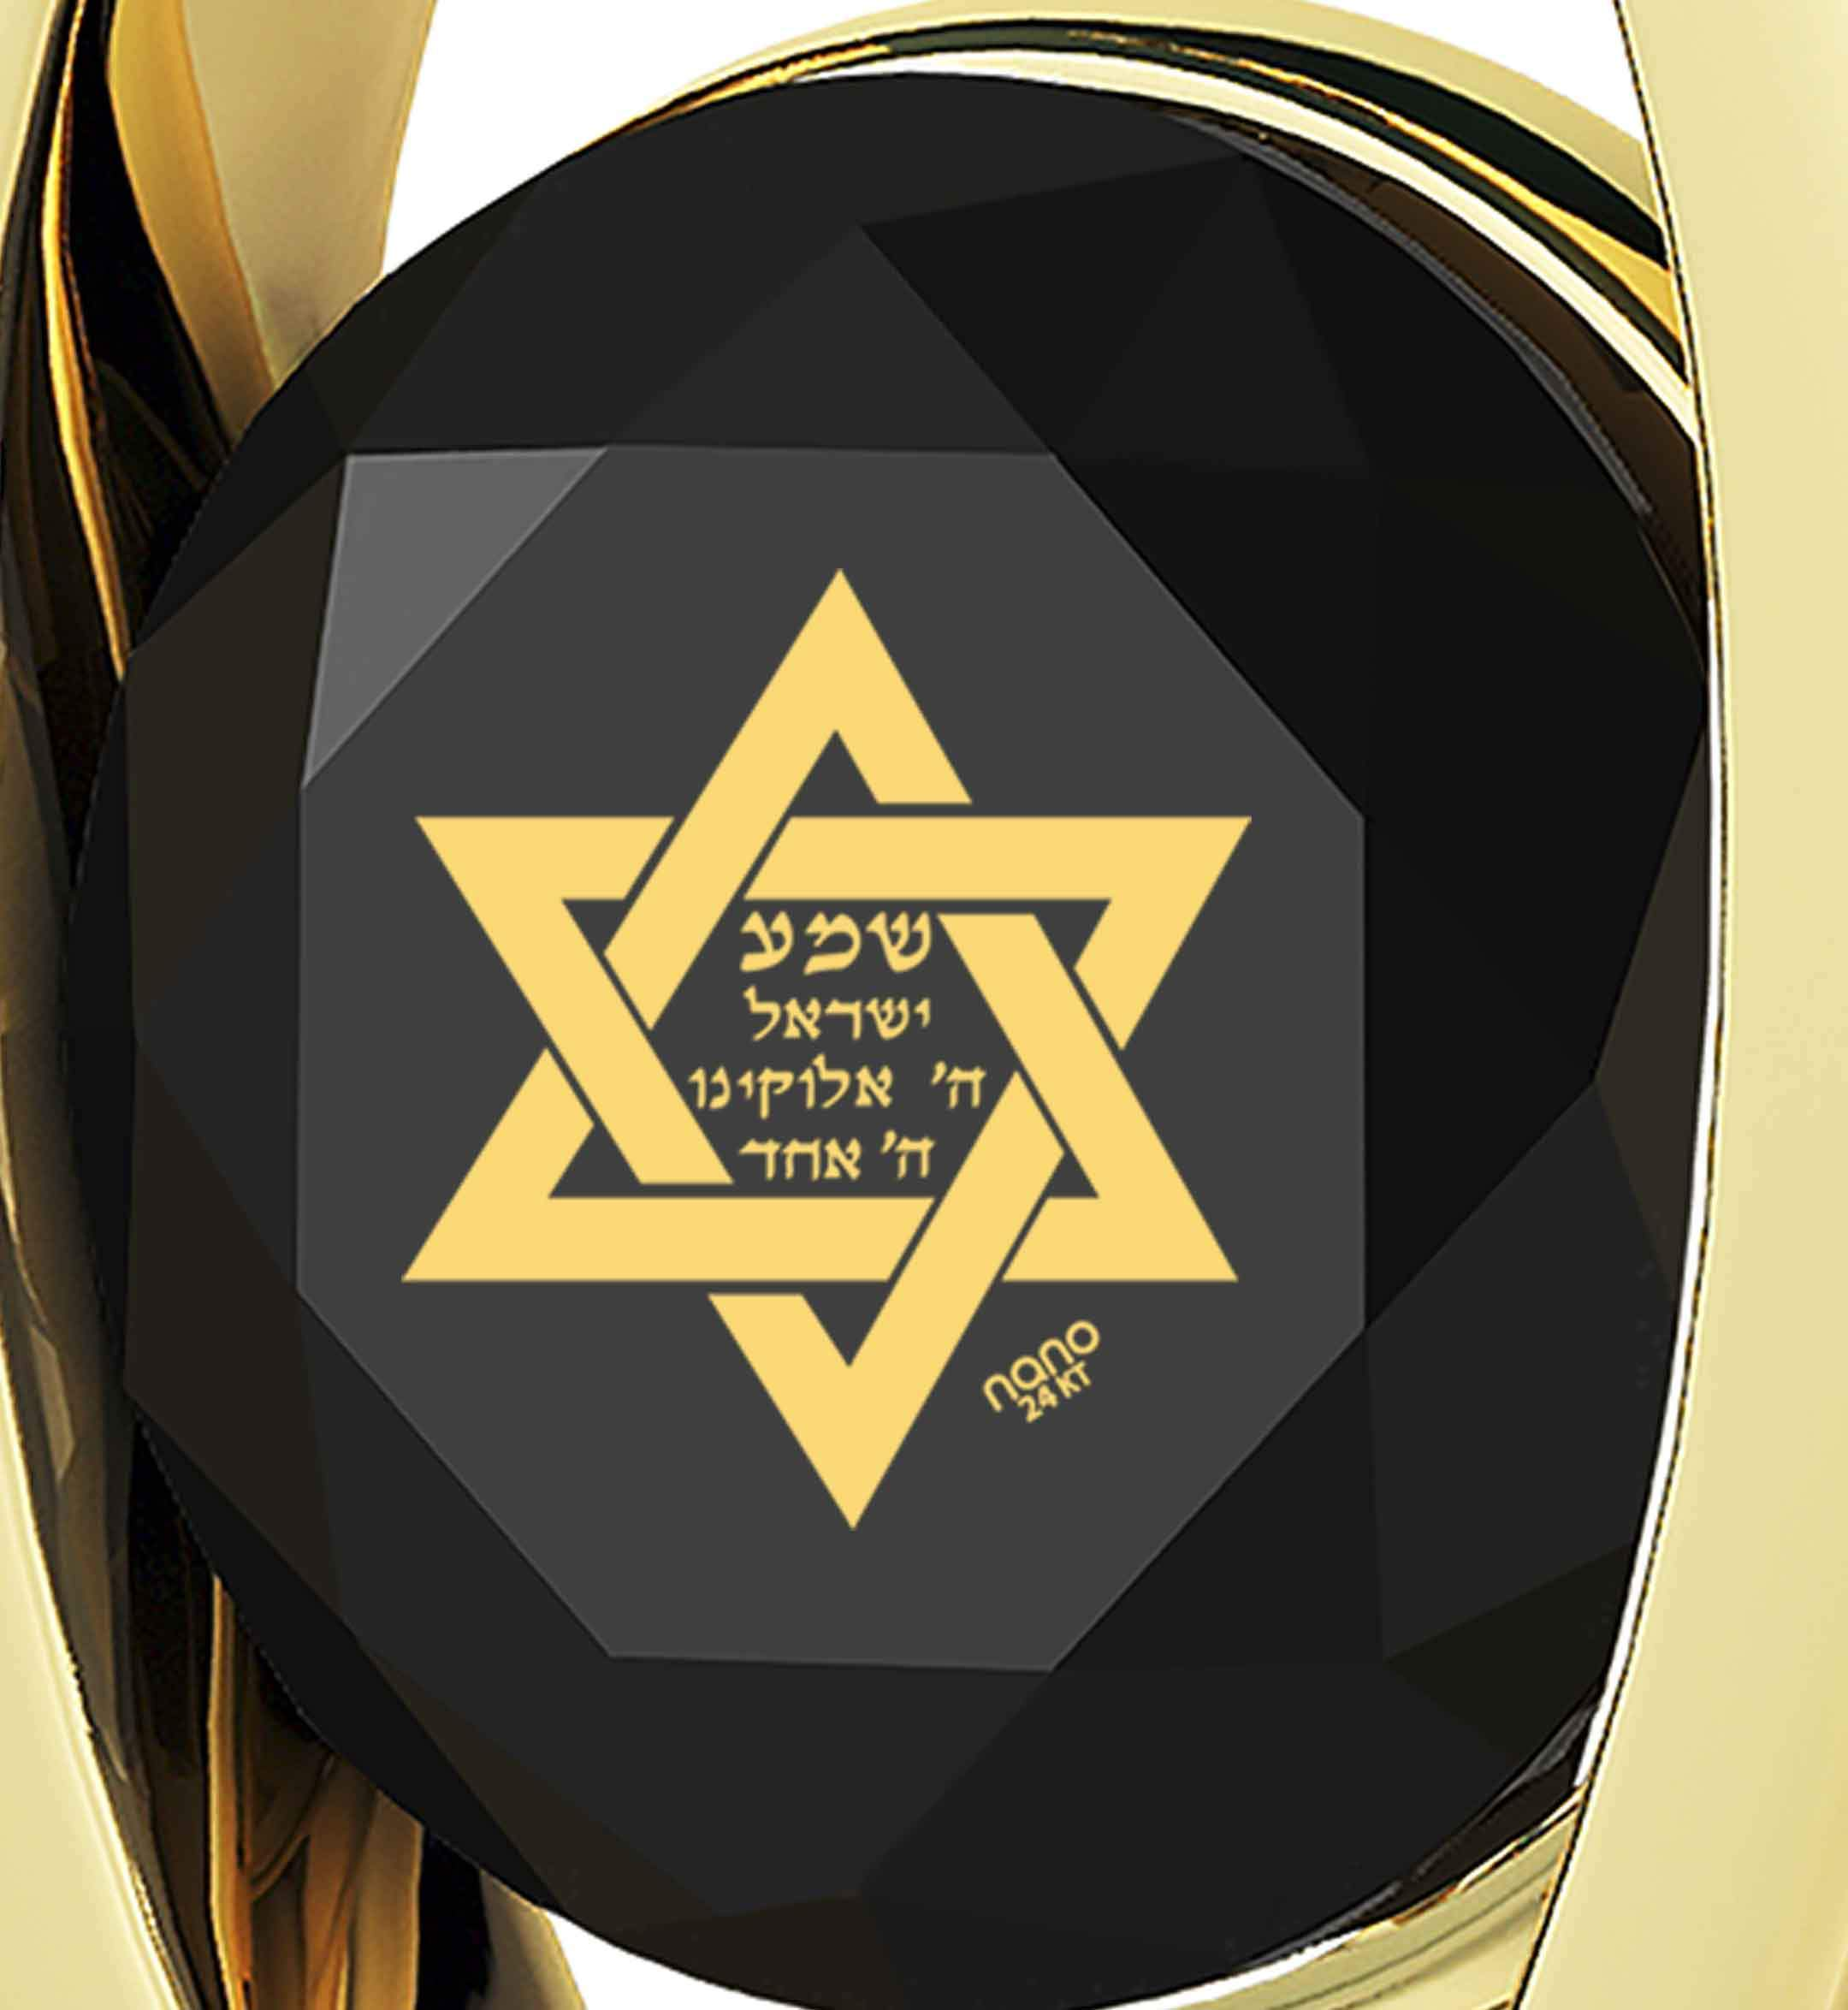 """Shema Yisrael"" Engraved in 24k, Jewish Necklace with Black Onyx Stone, Jewelry From Israe,l Gold Plated Necklace"